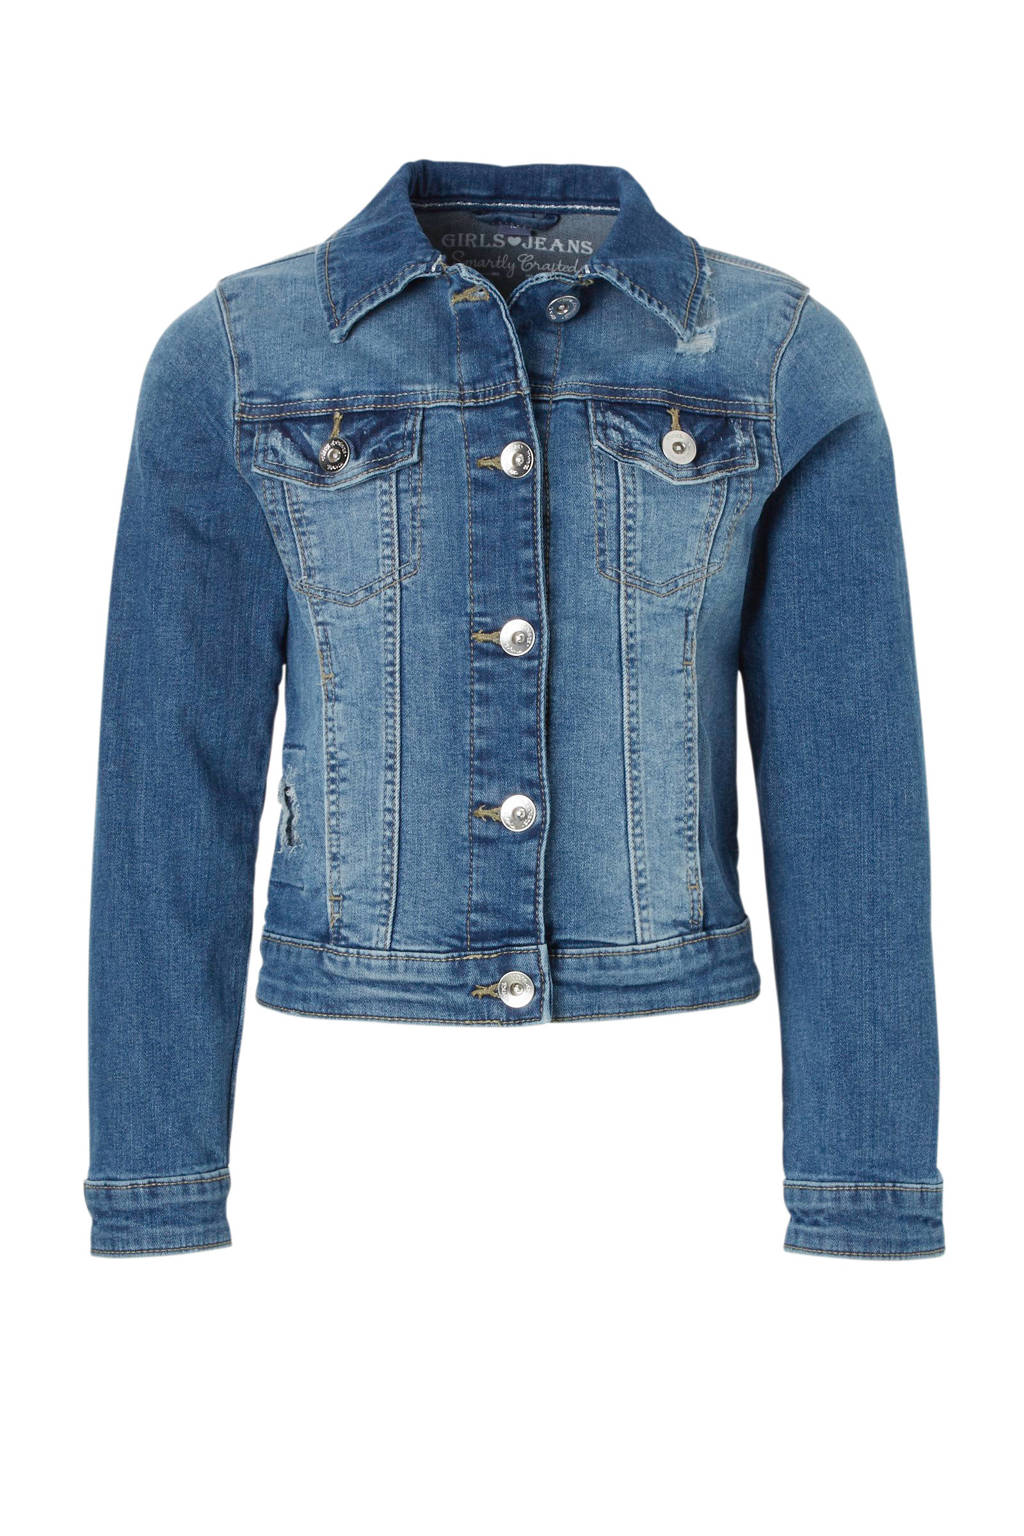 C&A Here & There spijkerjas met pailletten, Stonewashed